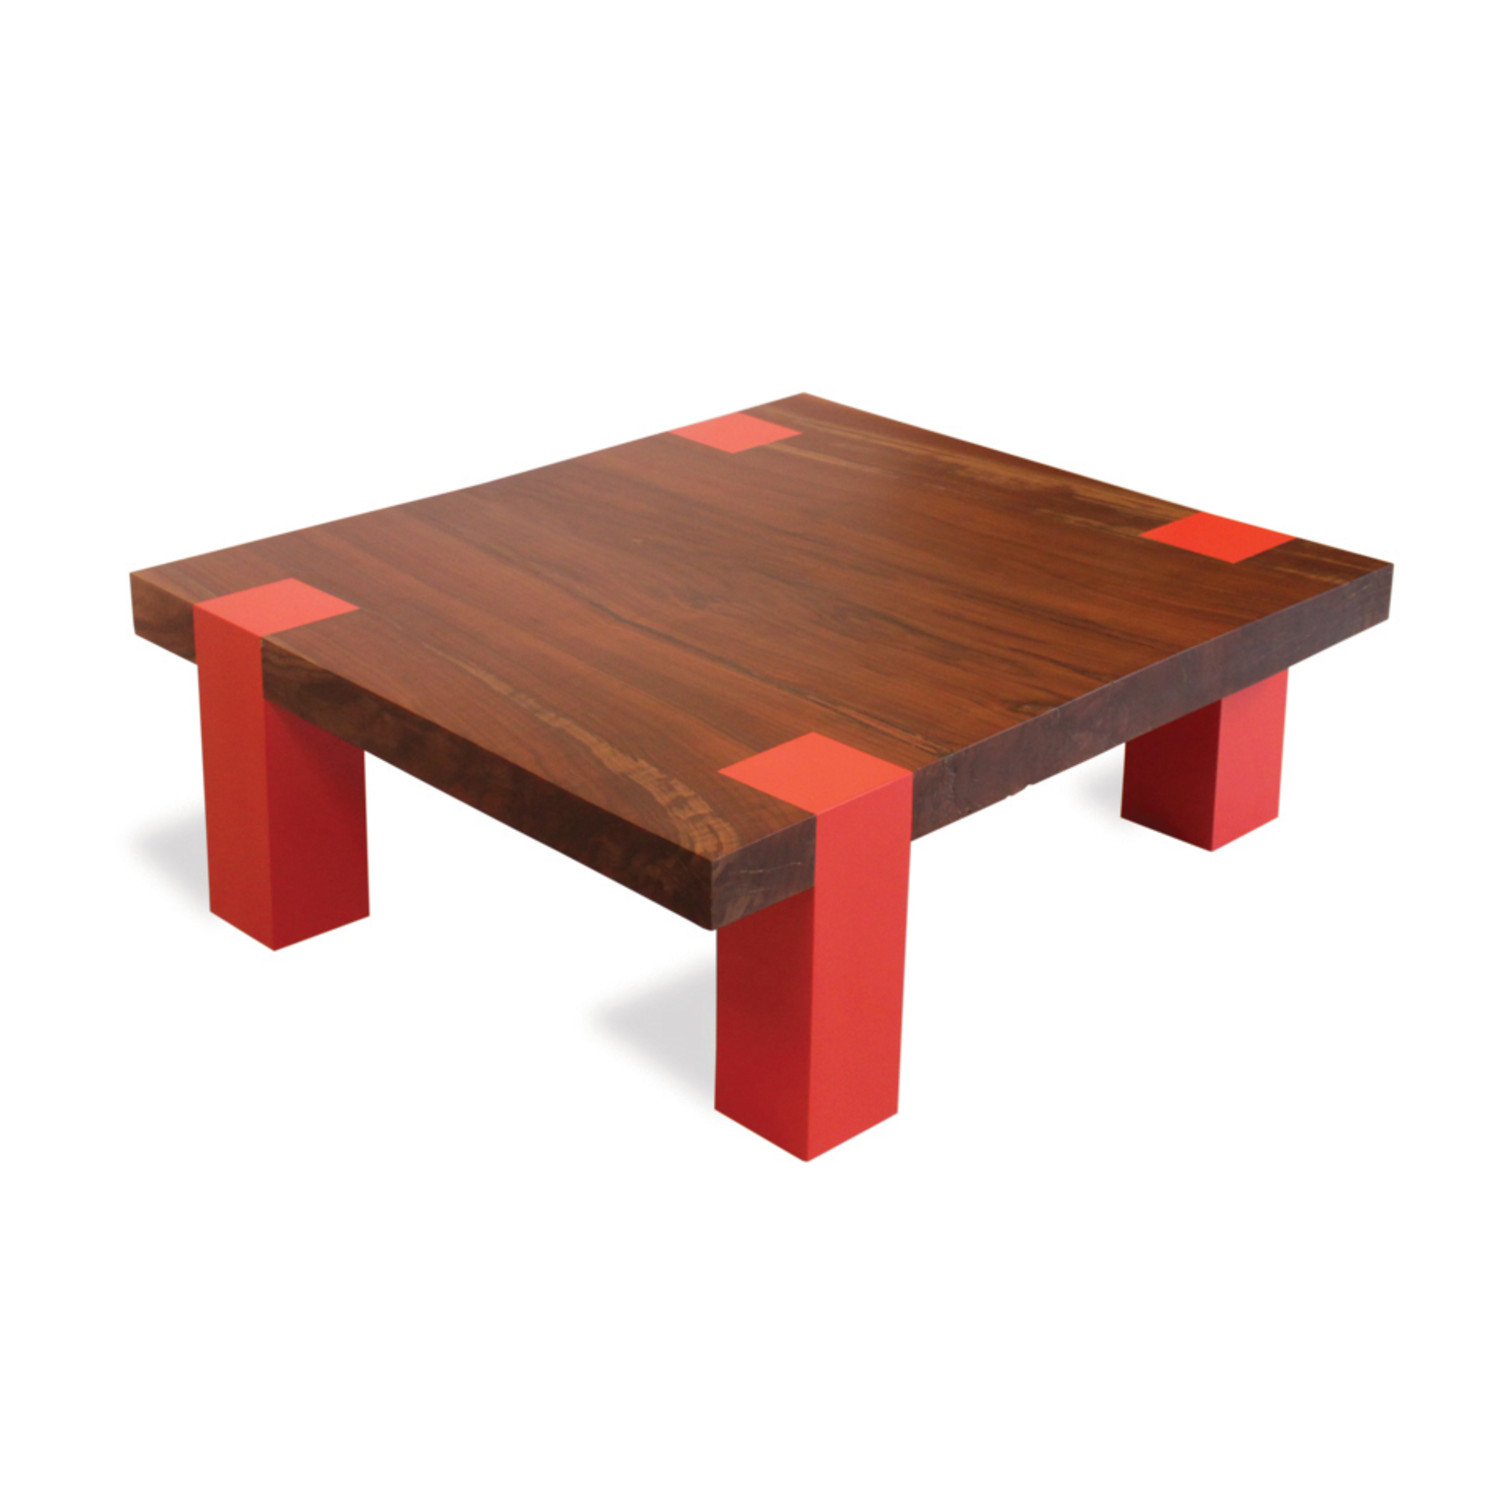 Single Slab Walnut And Lacquer Coffee Table